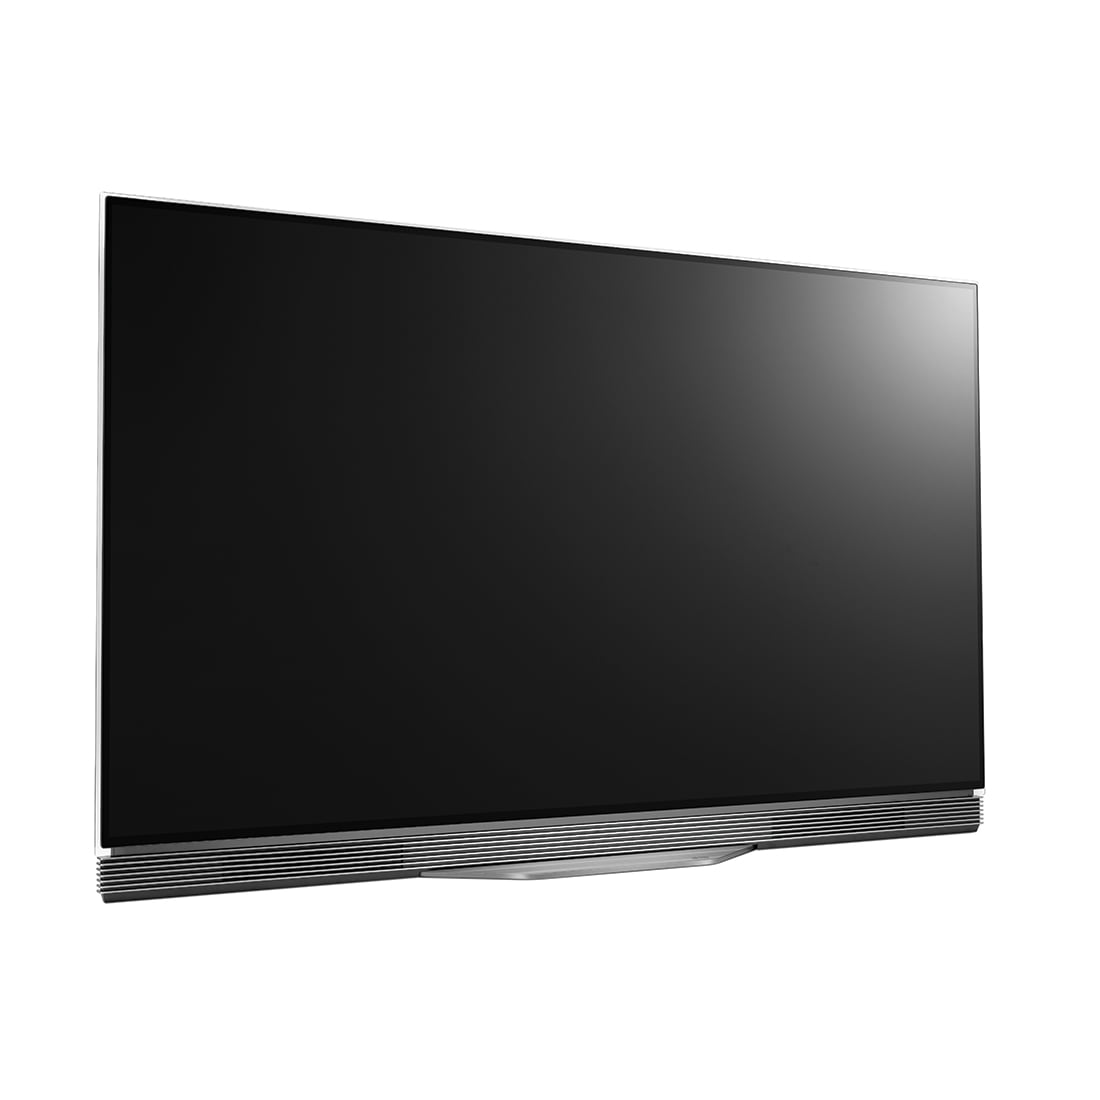 lg oled55e7p 55 4k hdr smart tv open box final clearout. Black Bedroom Furniture Sets. Home Design Ideas